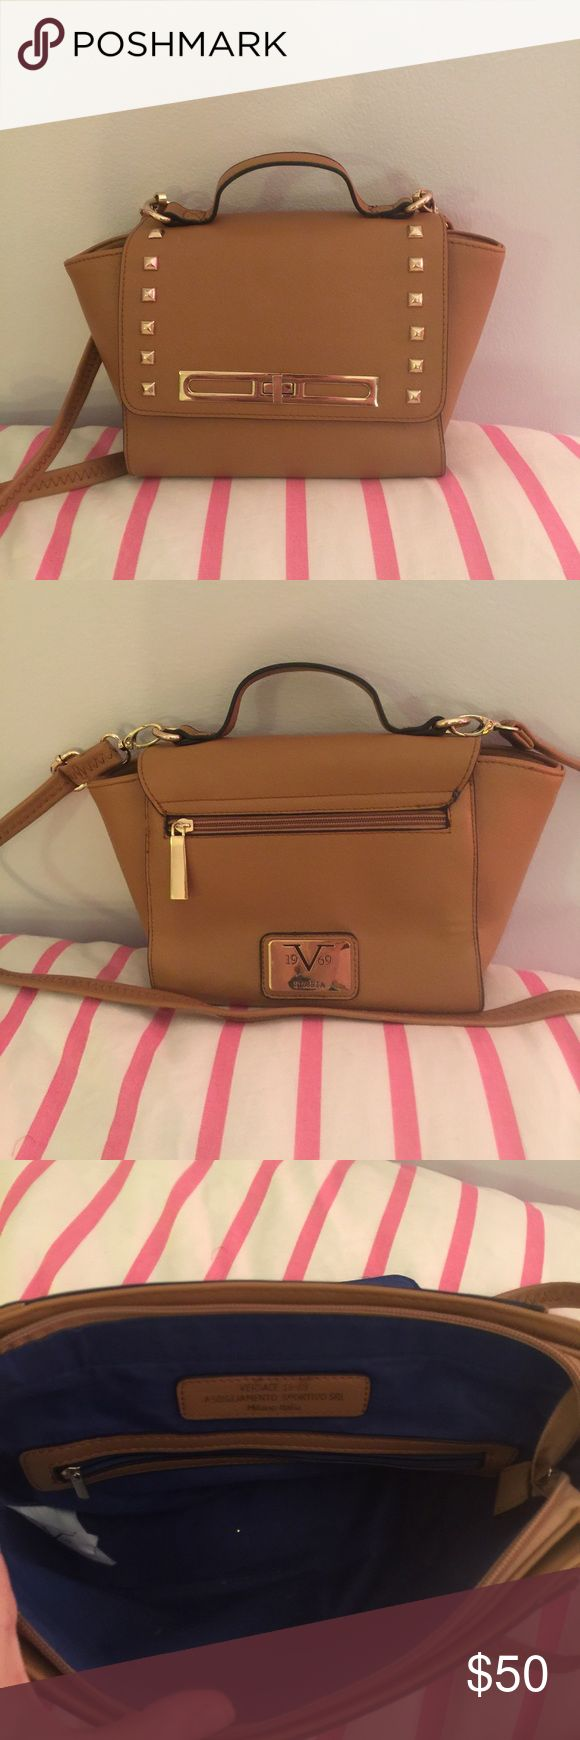 versace 19.69 abbigliamento sportivo tan crossbody versace 1969 abbigliamento sportivo tan crossbody handbag. Small, studded crossbody bag. Excellent condition. Only used a few times. Please let me know if you have any questions! versace 1969 abbigliamento sportivo Bags Crossbody Bags